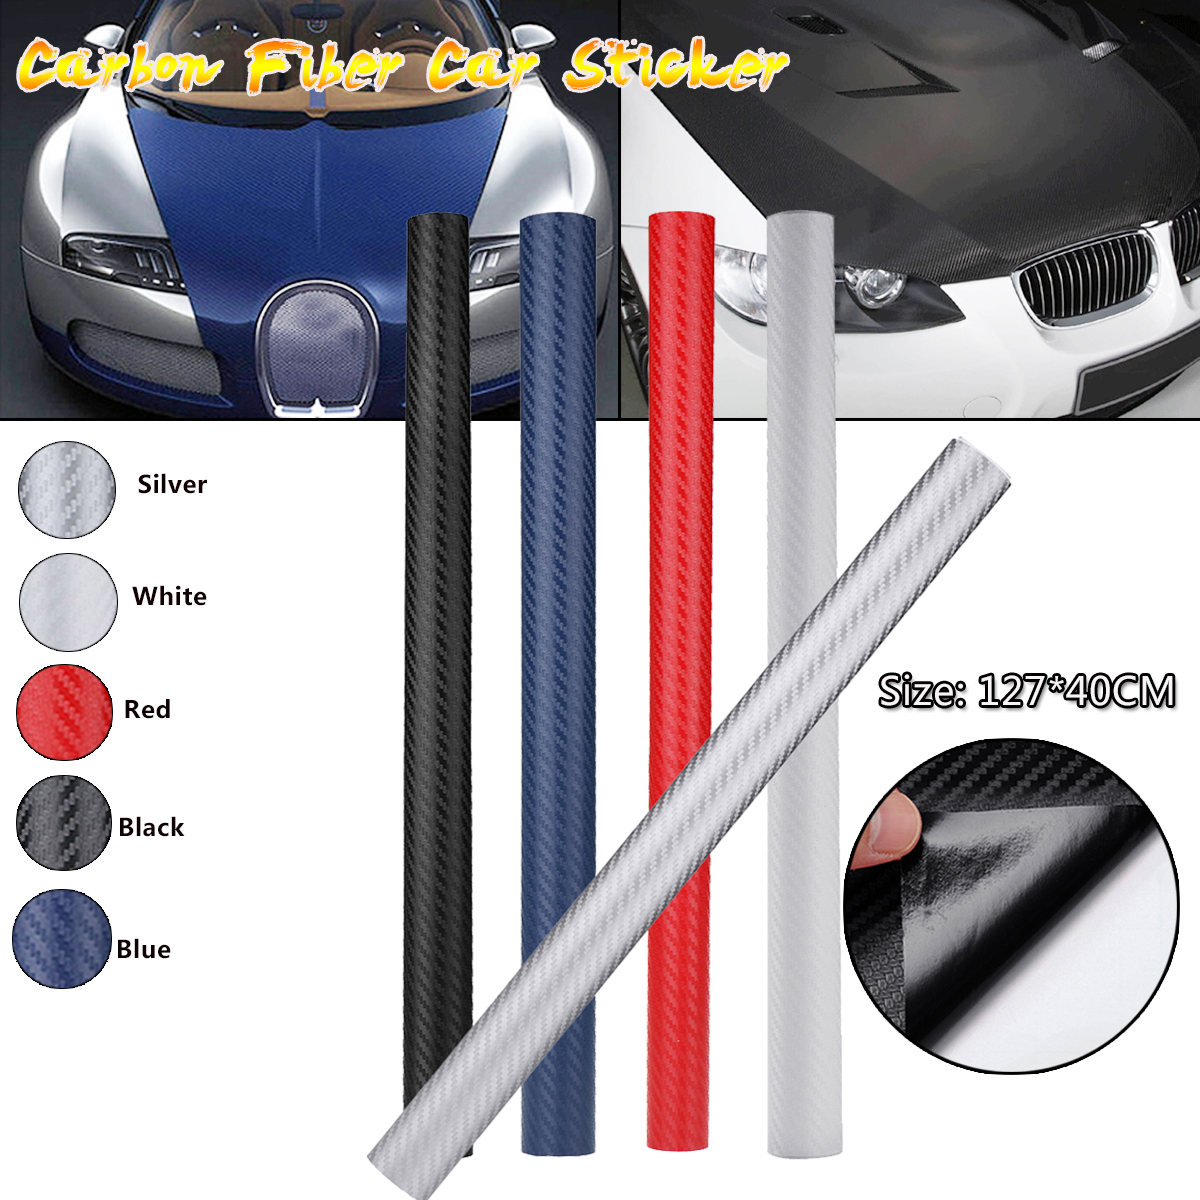 цена на 1PC 3D Carbon Fiber Auto Car Sticker DIY Vinyl Decal Wrap Roll Sheet Film 127 x 40cm